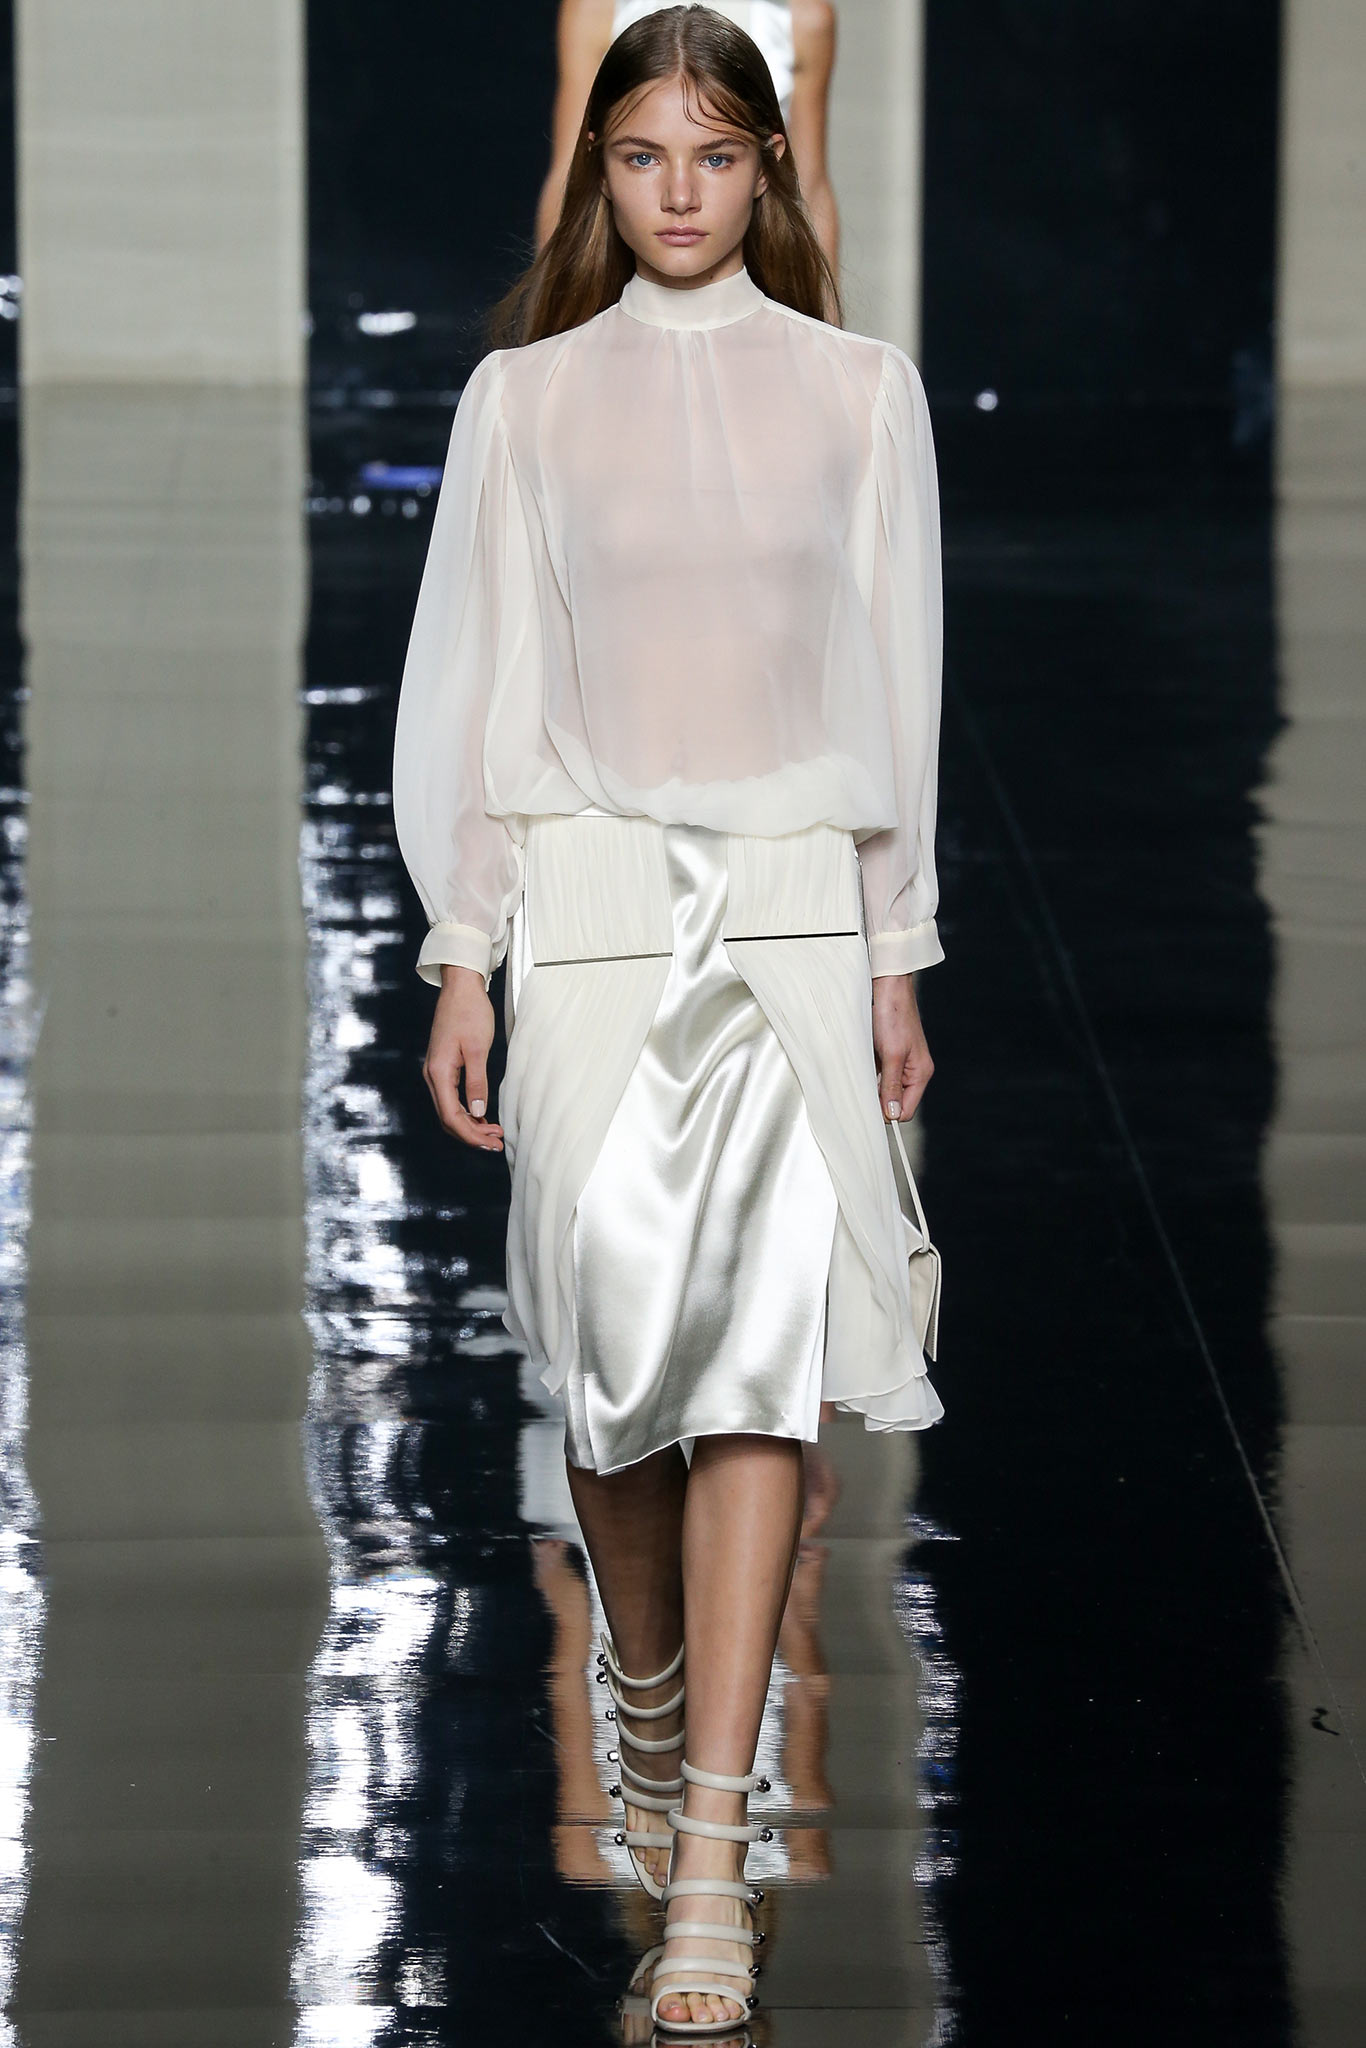 Christopher-Kane-Spring-2015-trends-sheer-white